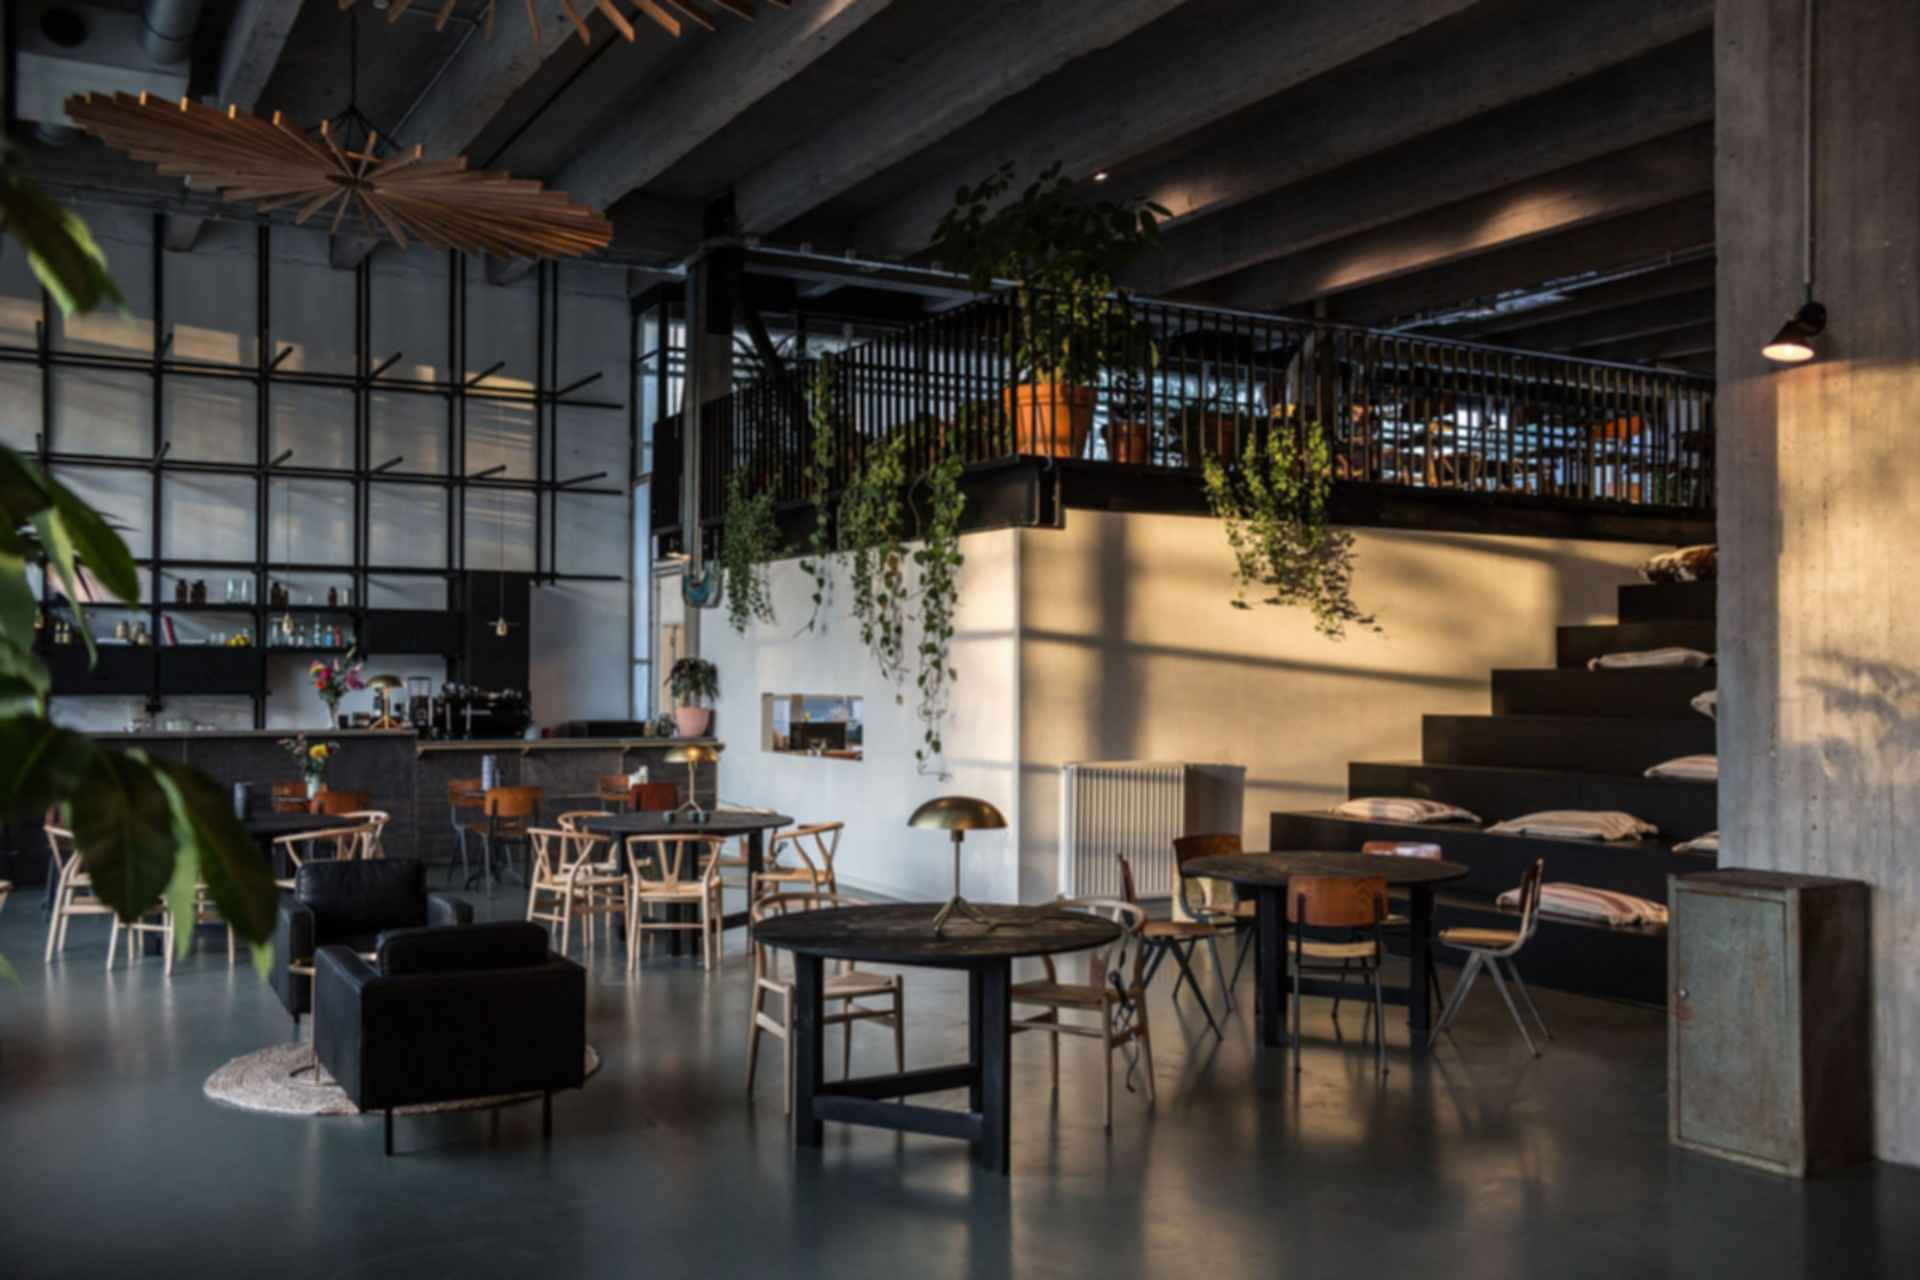 Fosbury & Sons Co-Working Space